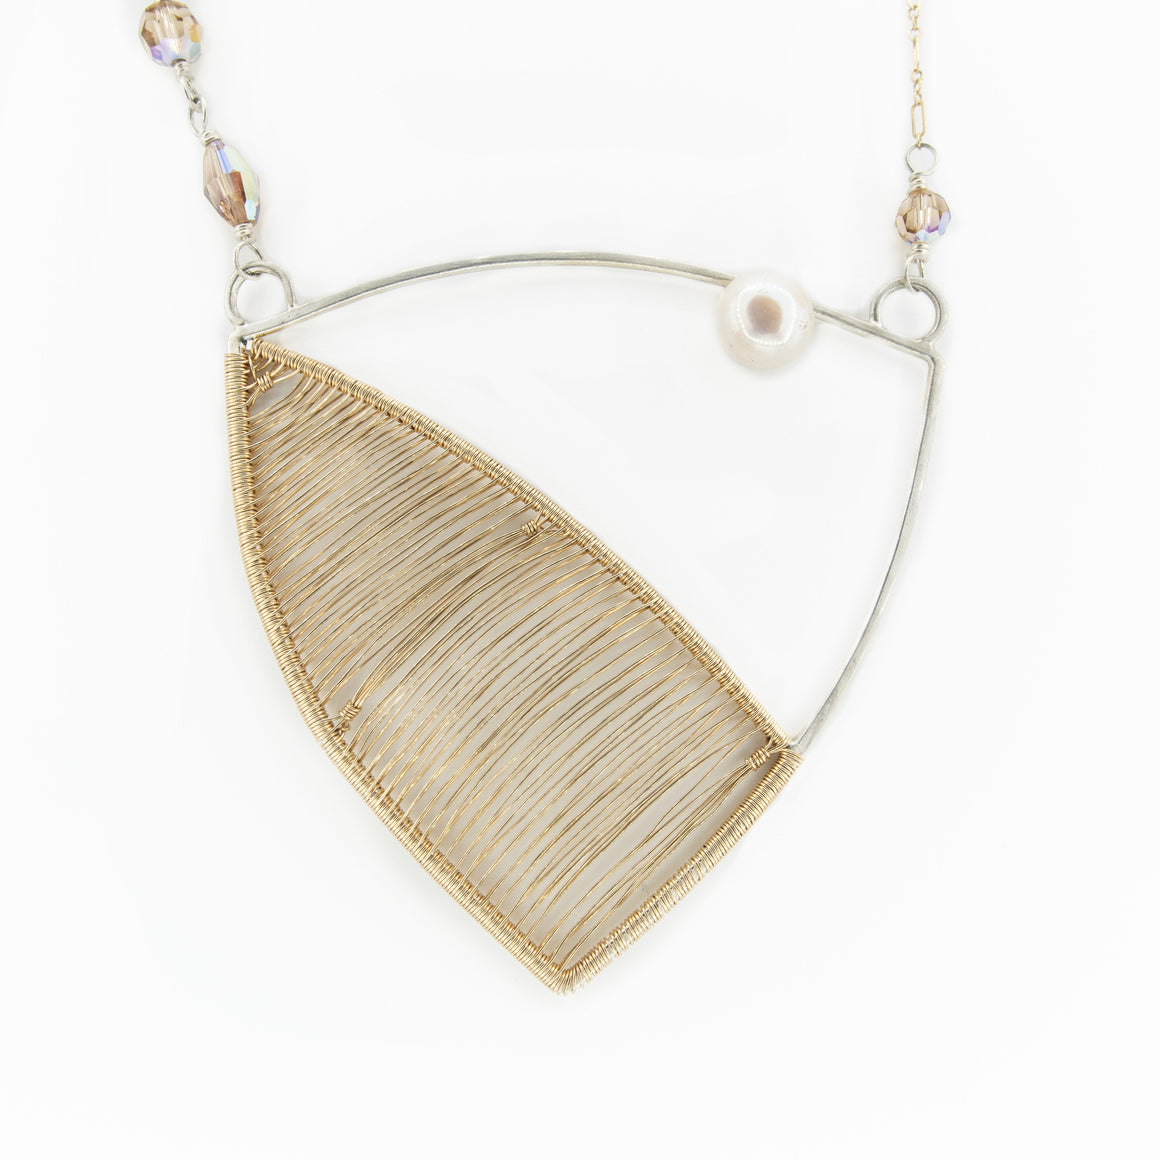 Beatrice - Mixed Metals Woven Necklace - Original Sin Jewelry